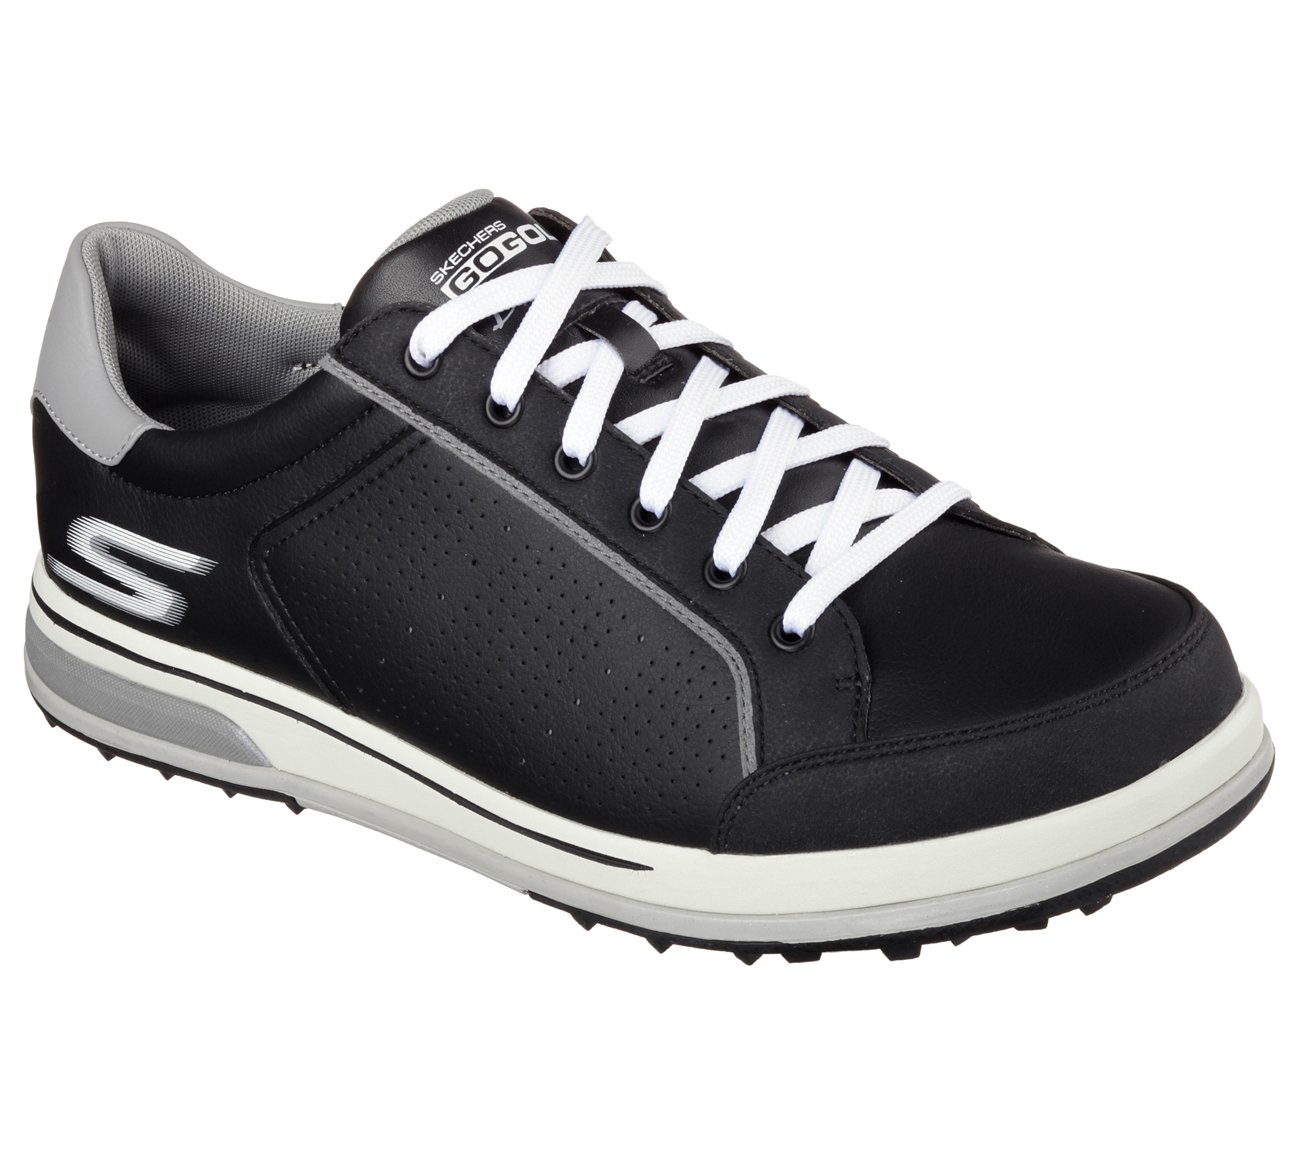 Skechers Go Golf Drive  Golf Shoes